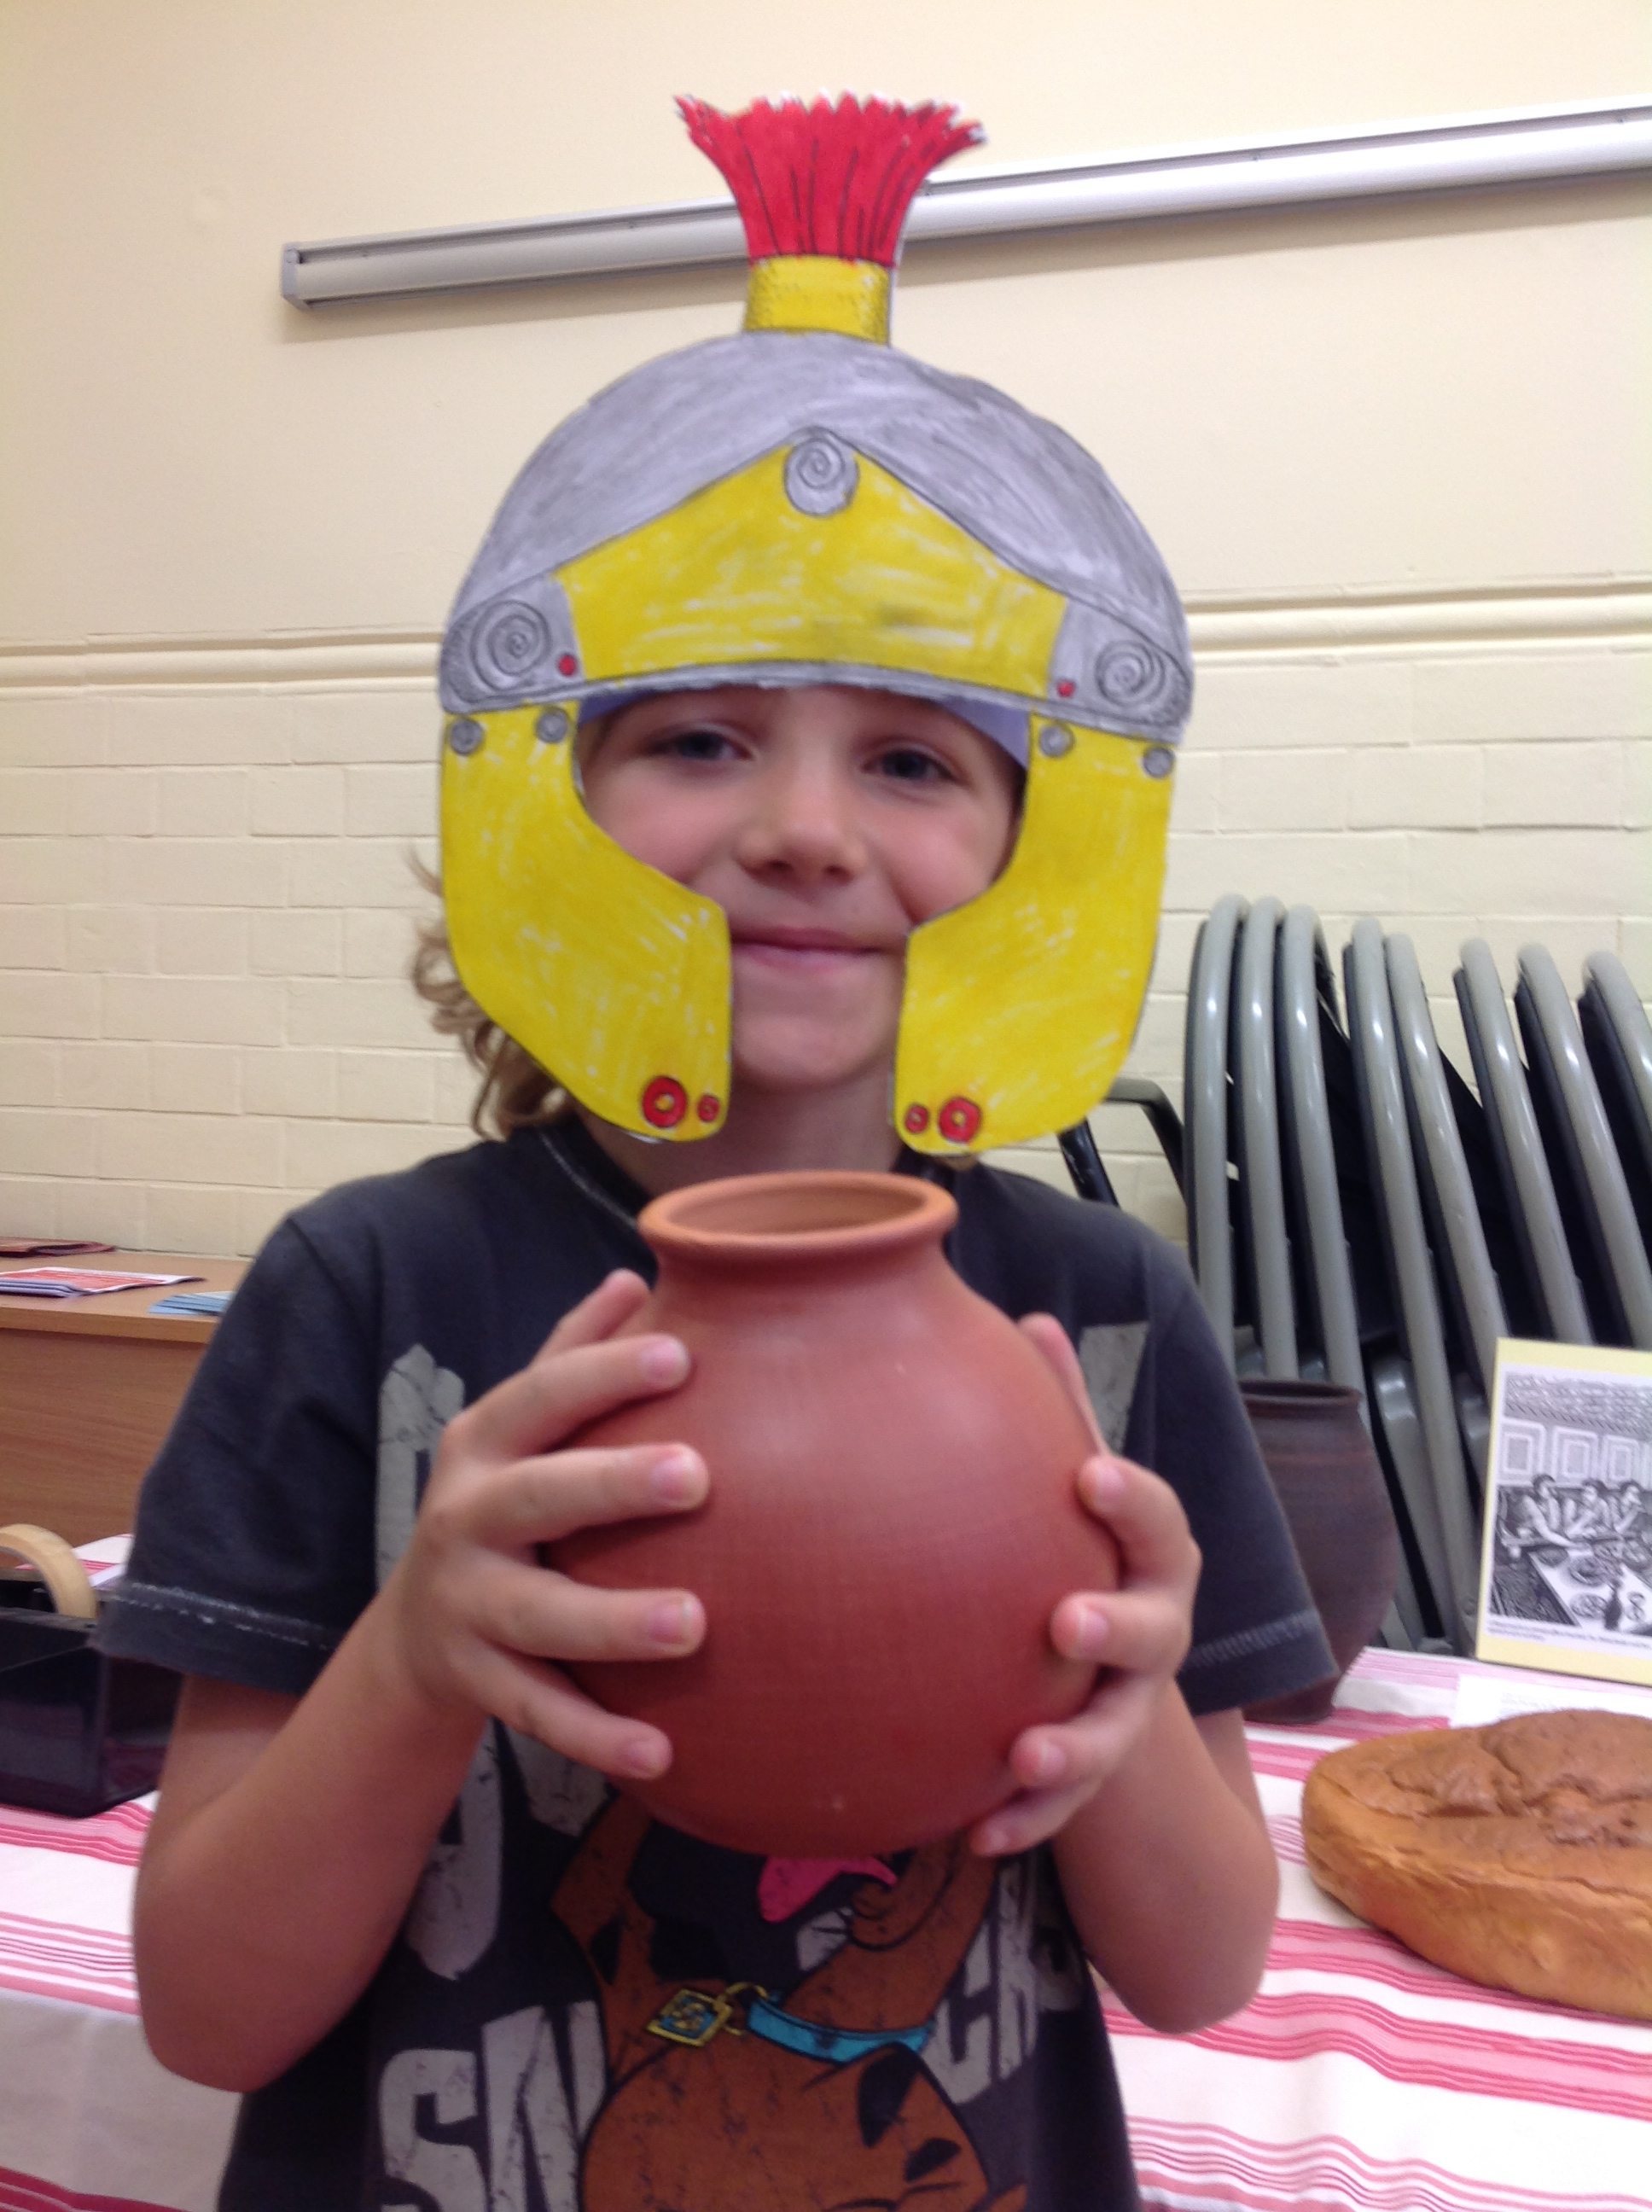 Photograph of a young boy holding a Roman style pot